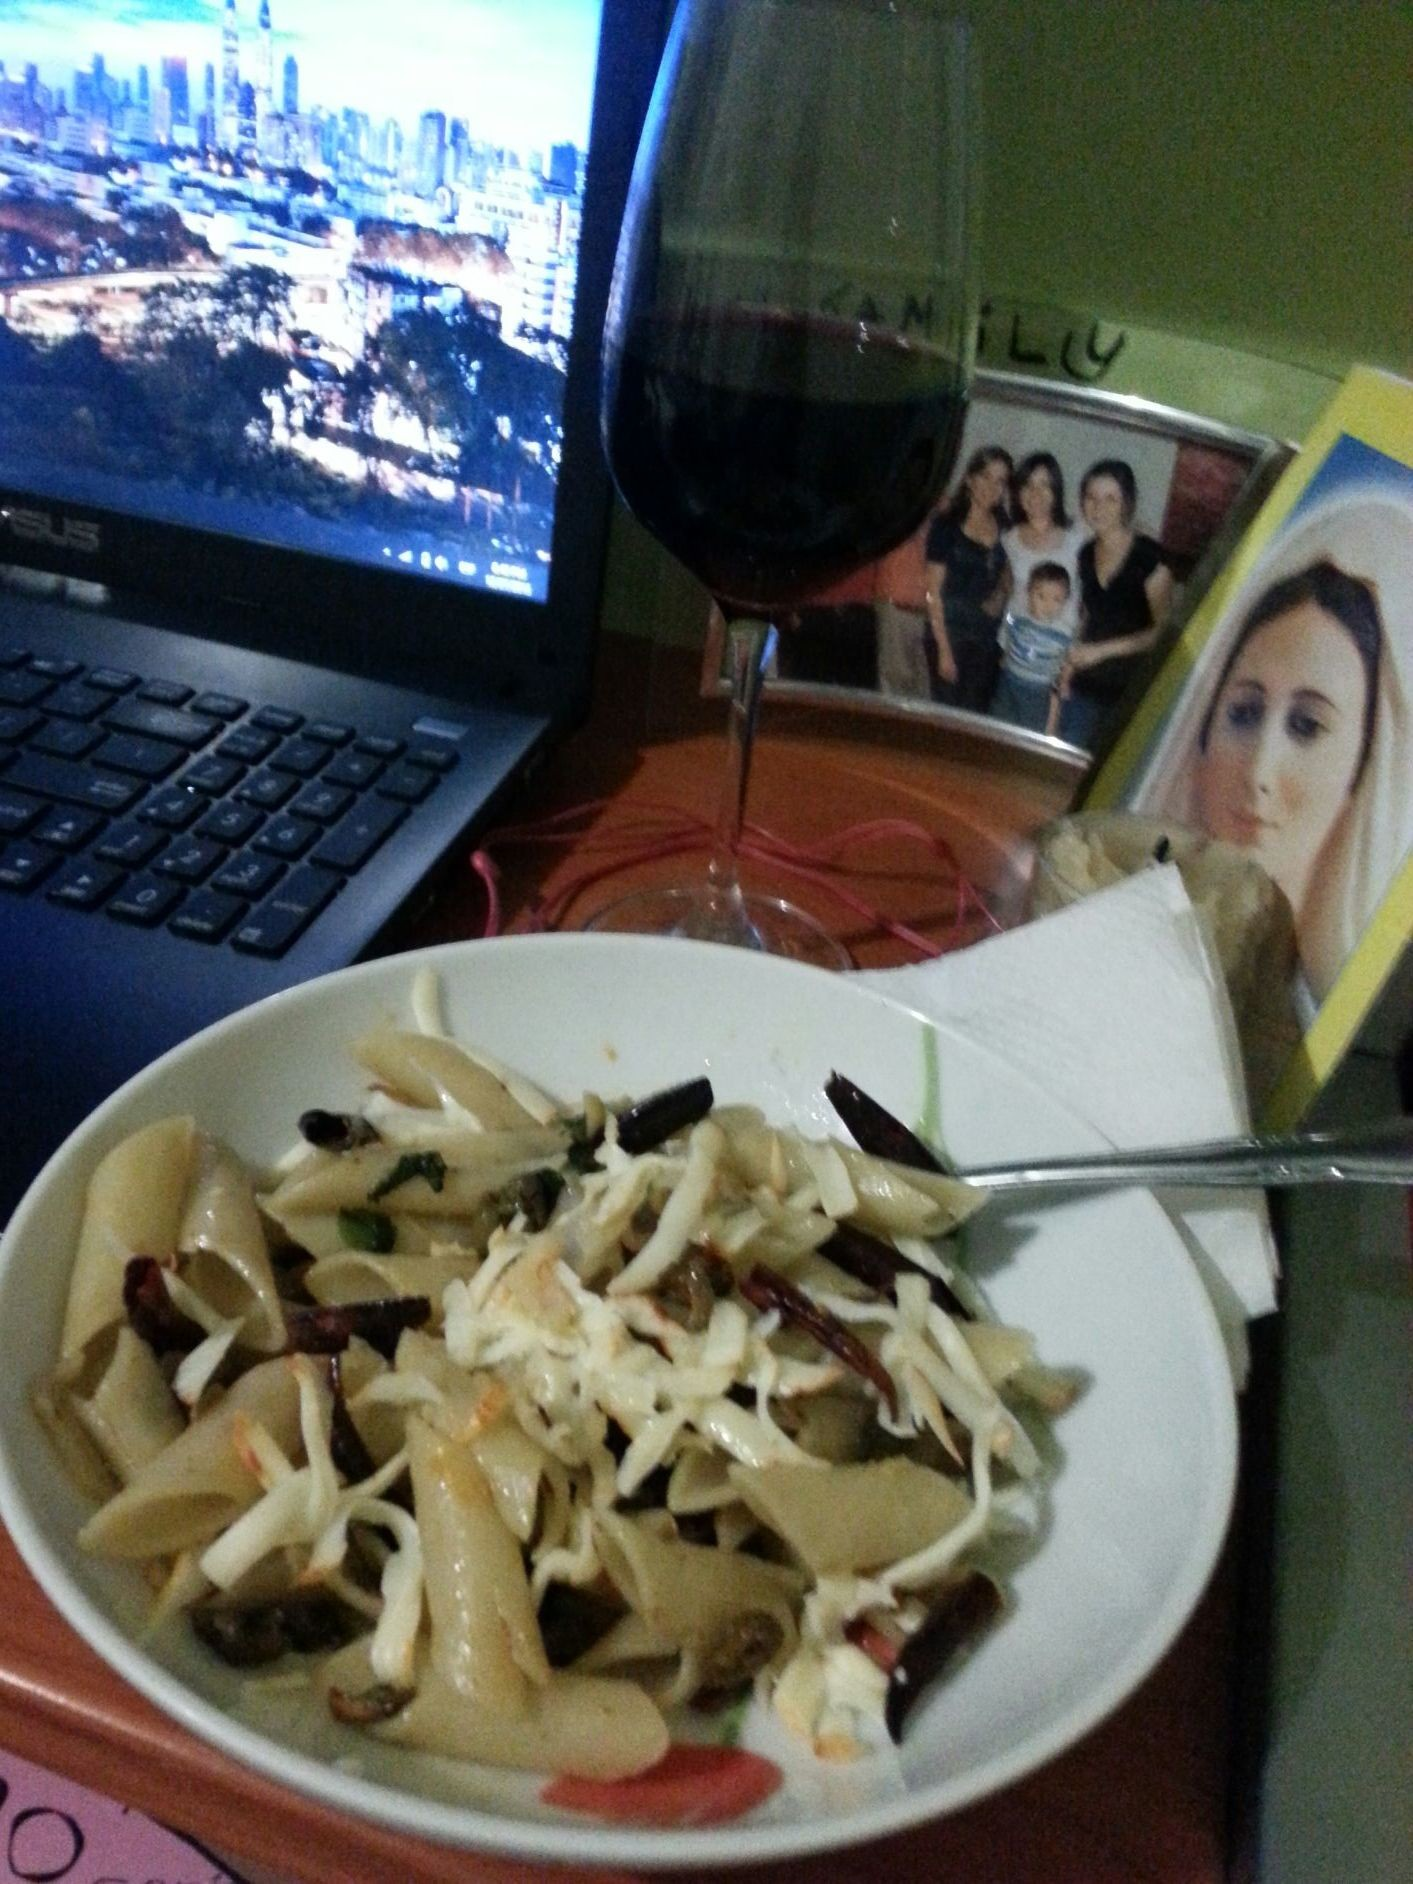 pasta with chili cheese garlic basil olives and olive oil bev merlot